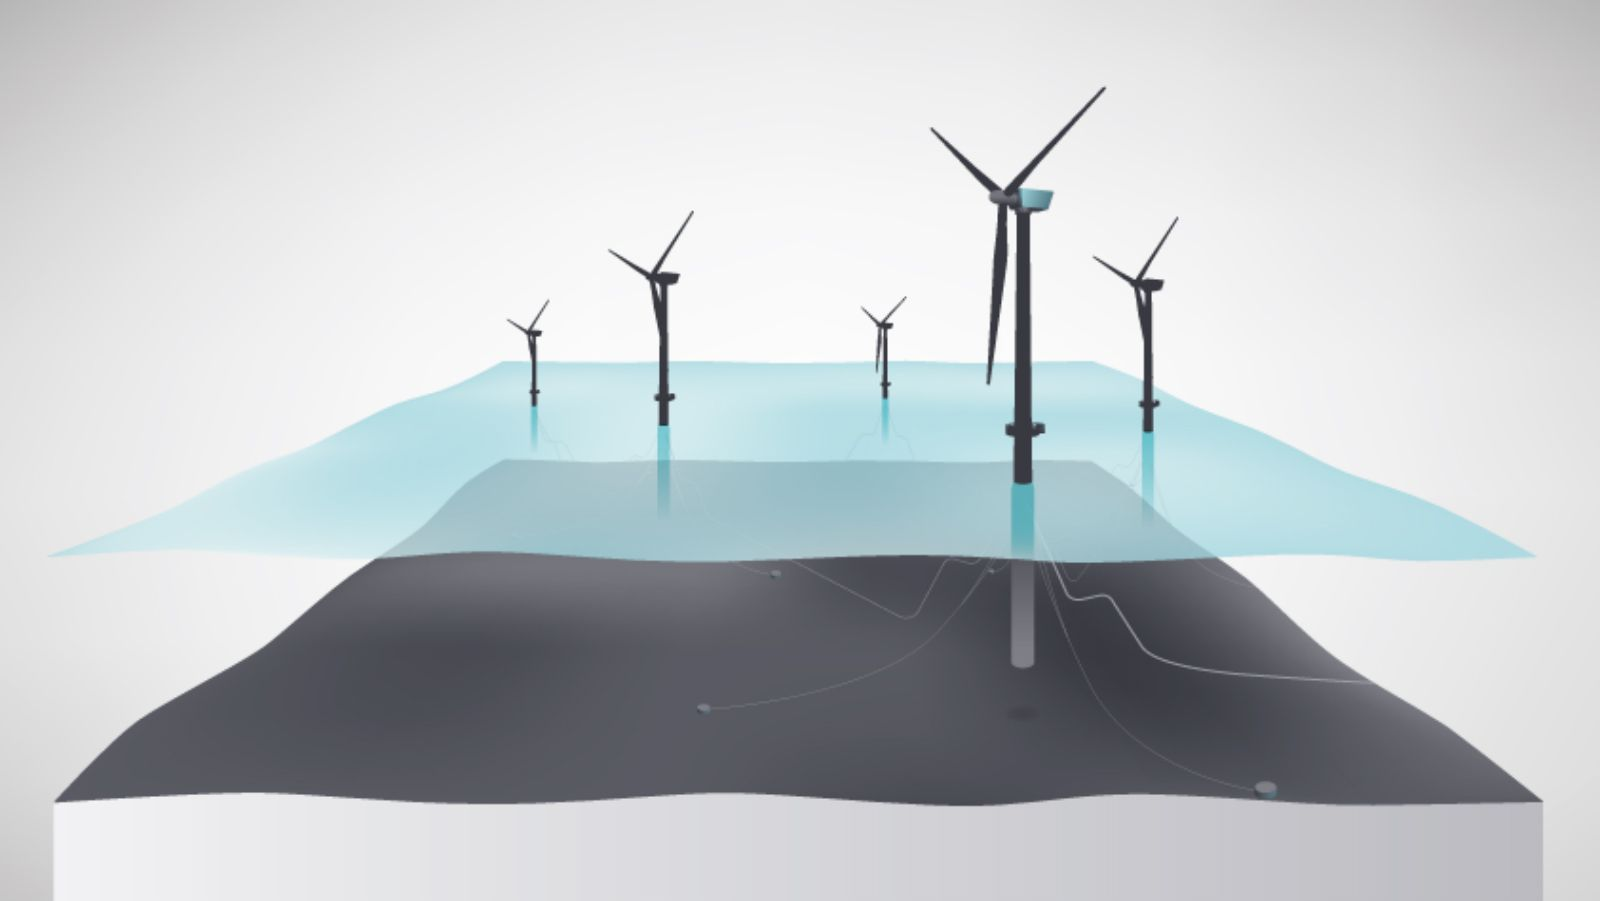 The world's first floating wind farm could be a game changer for renewable power